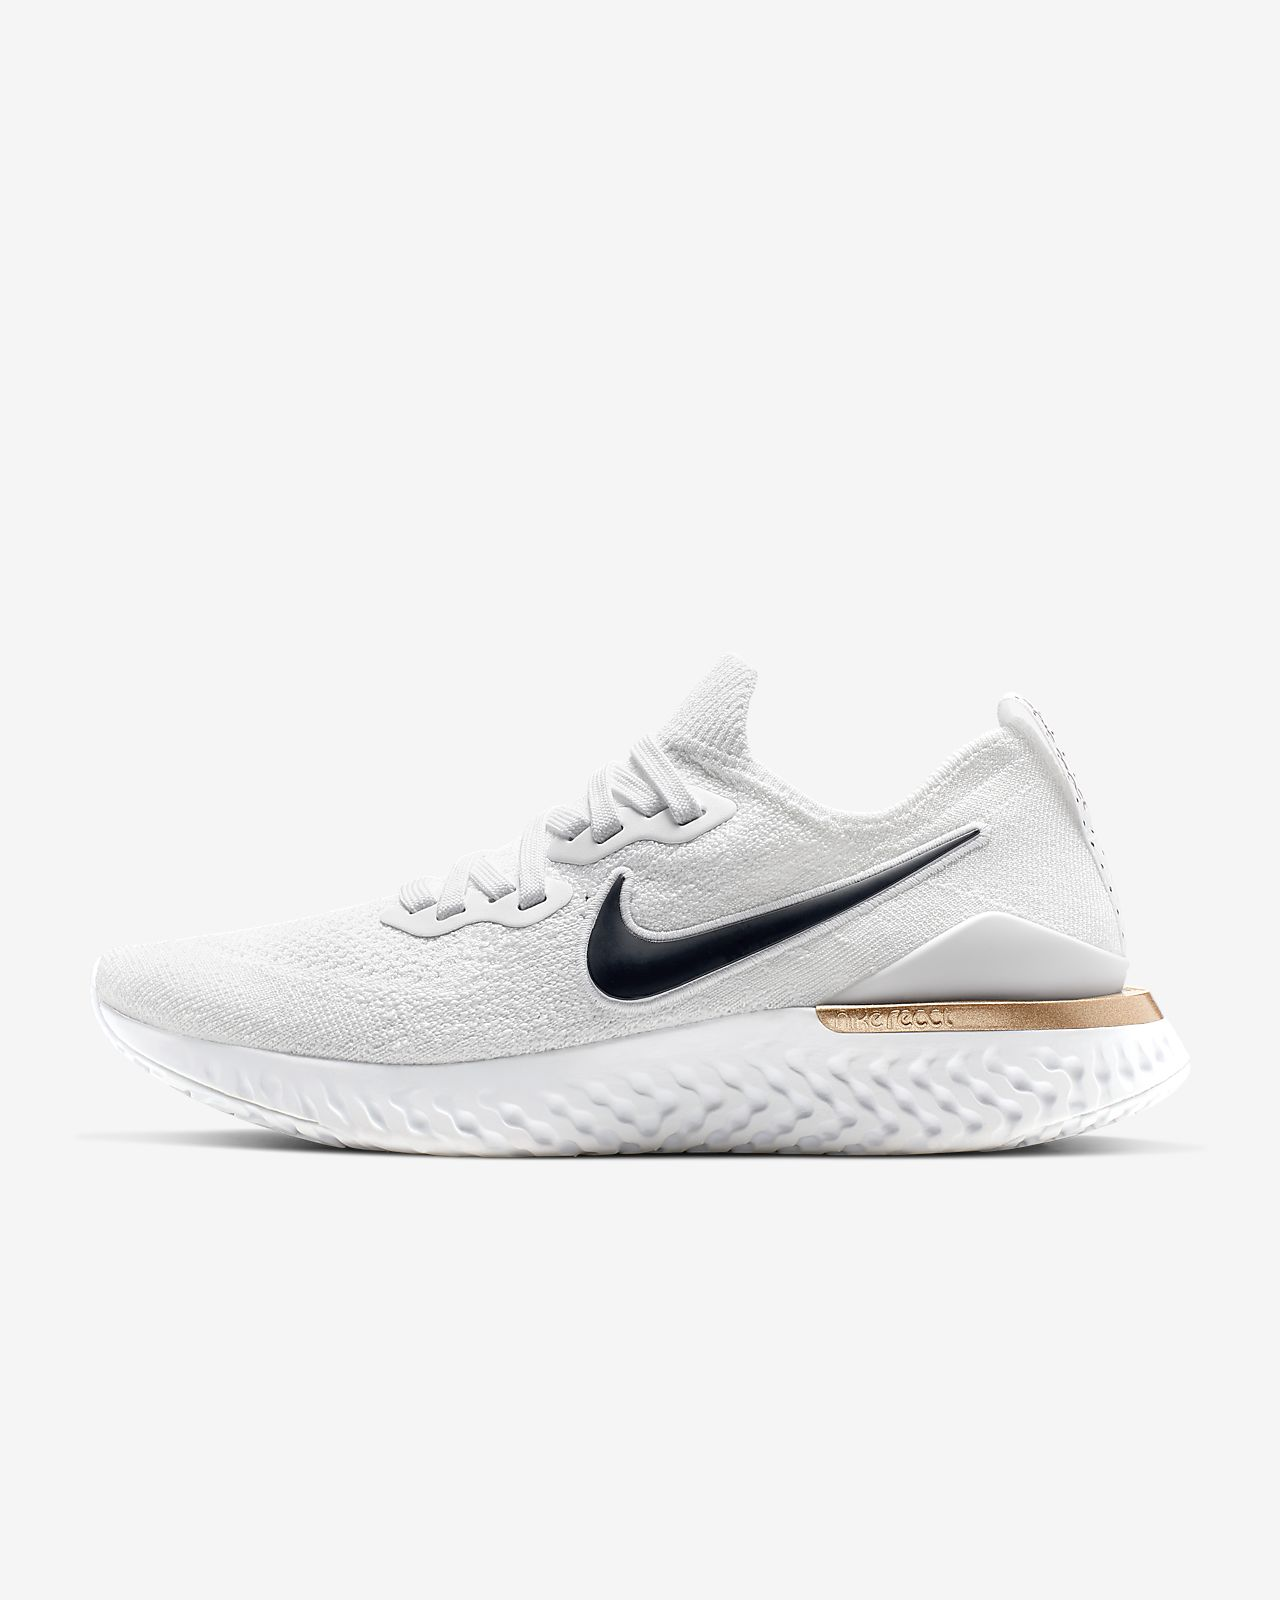 Nike Epic React Flyknit 2 Unité Totale Women's Running Shoe